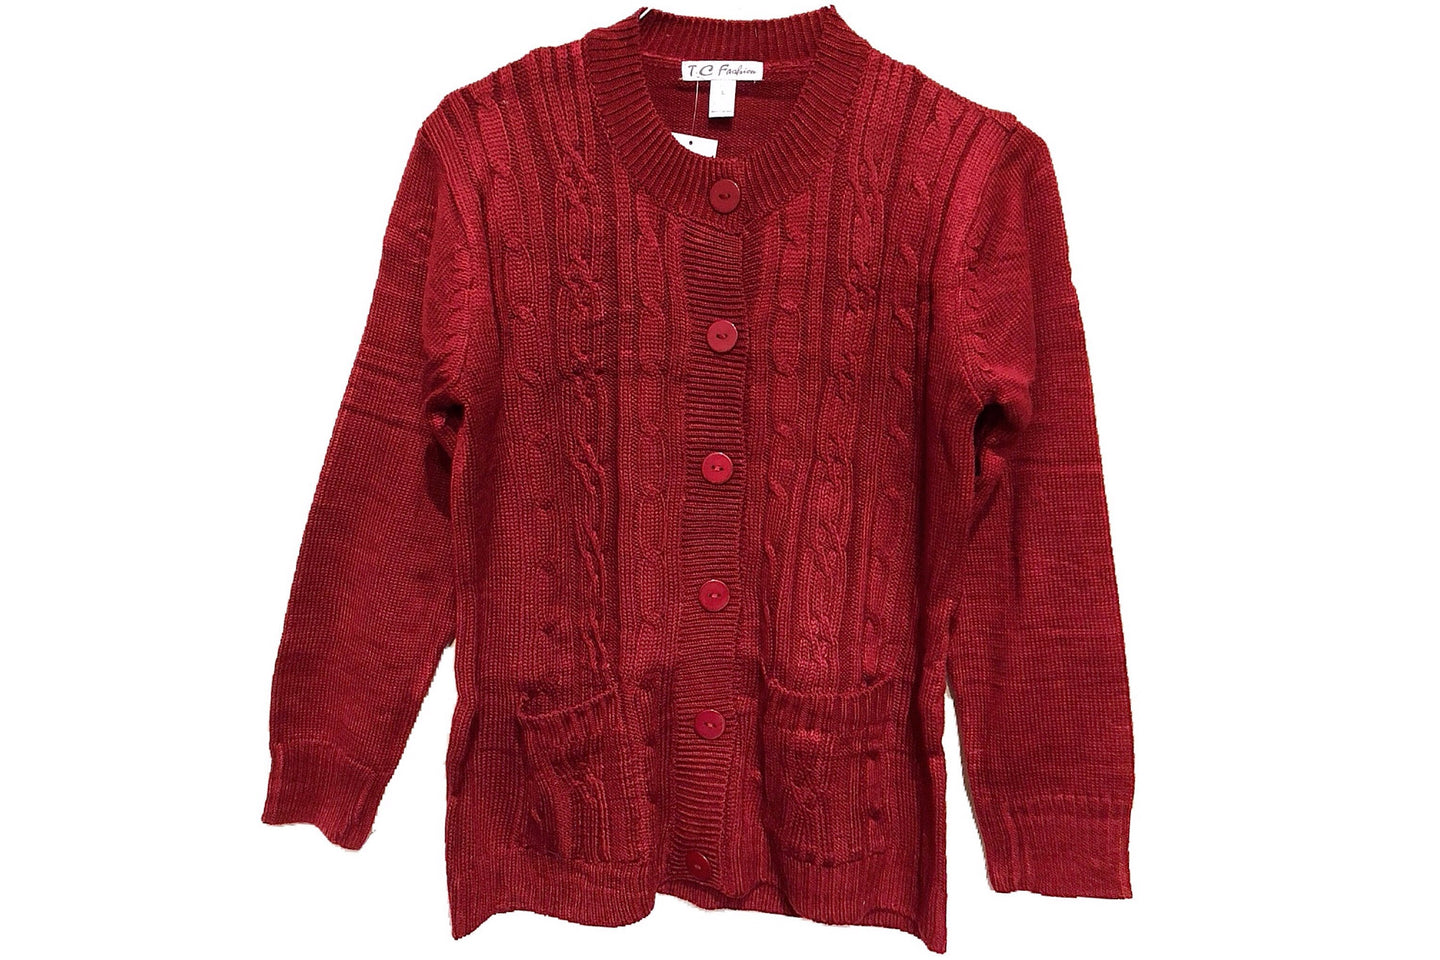 Chunky Cable Knit Sweater Cardigan (Wine Red)